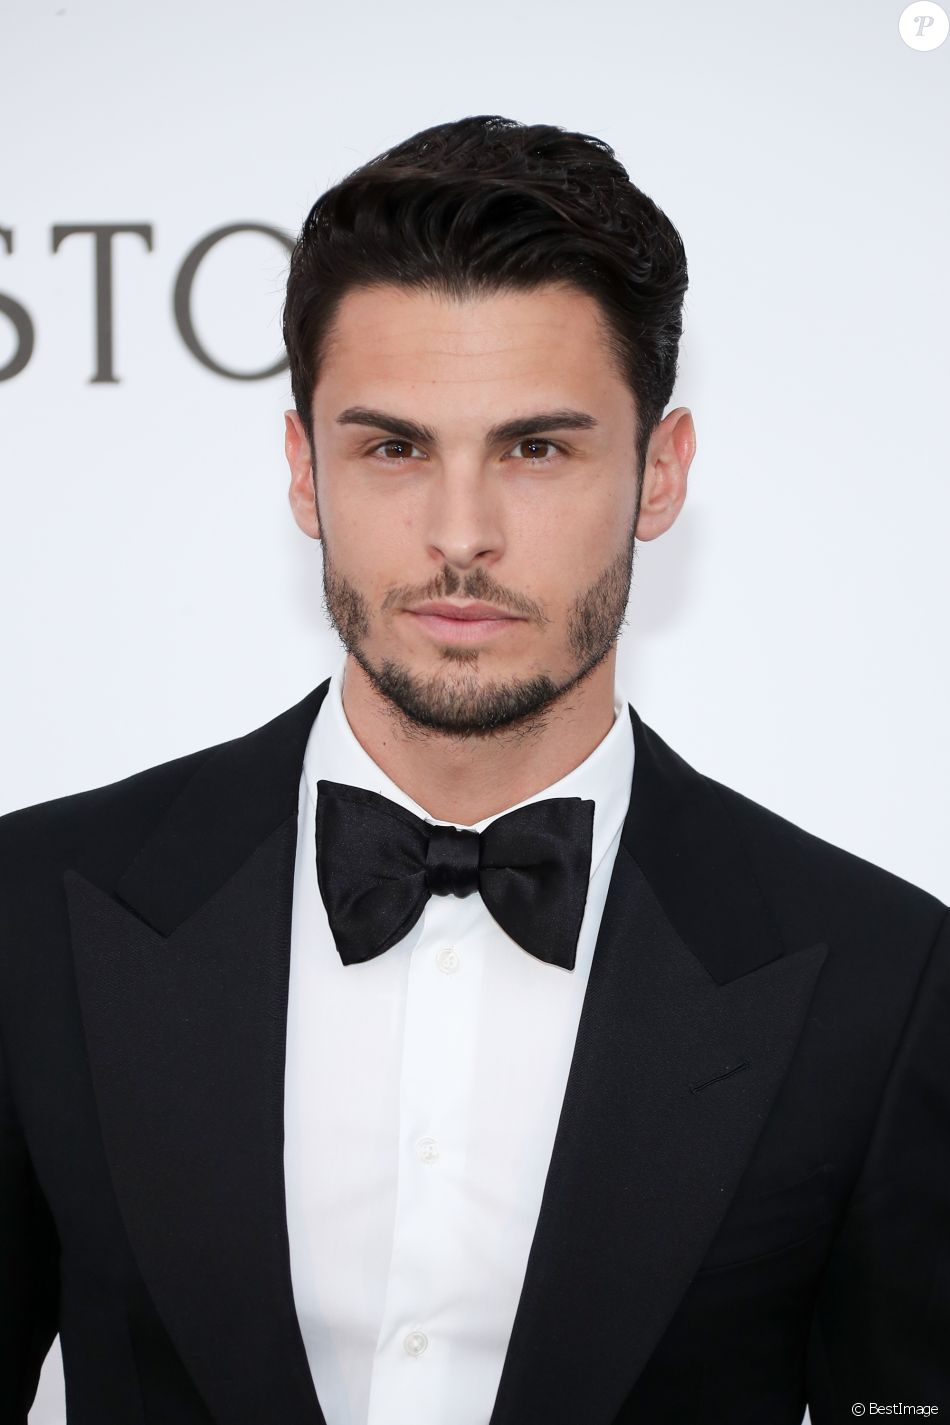 baptiste giabiconi le divorce de ses parents je suis rest seul avec ma m re purepeople. Black Bedroom Furniture Sets. Home Design Ideas